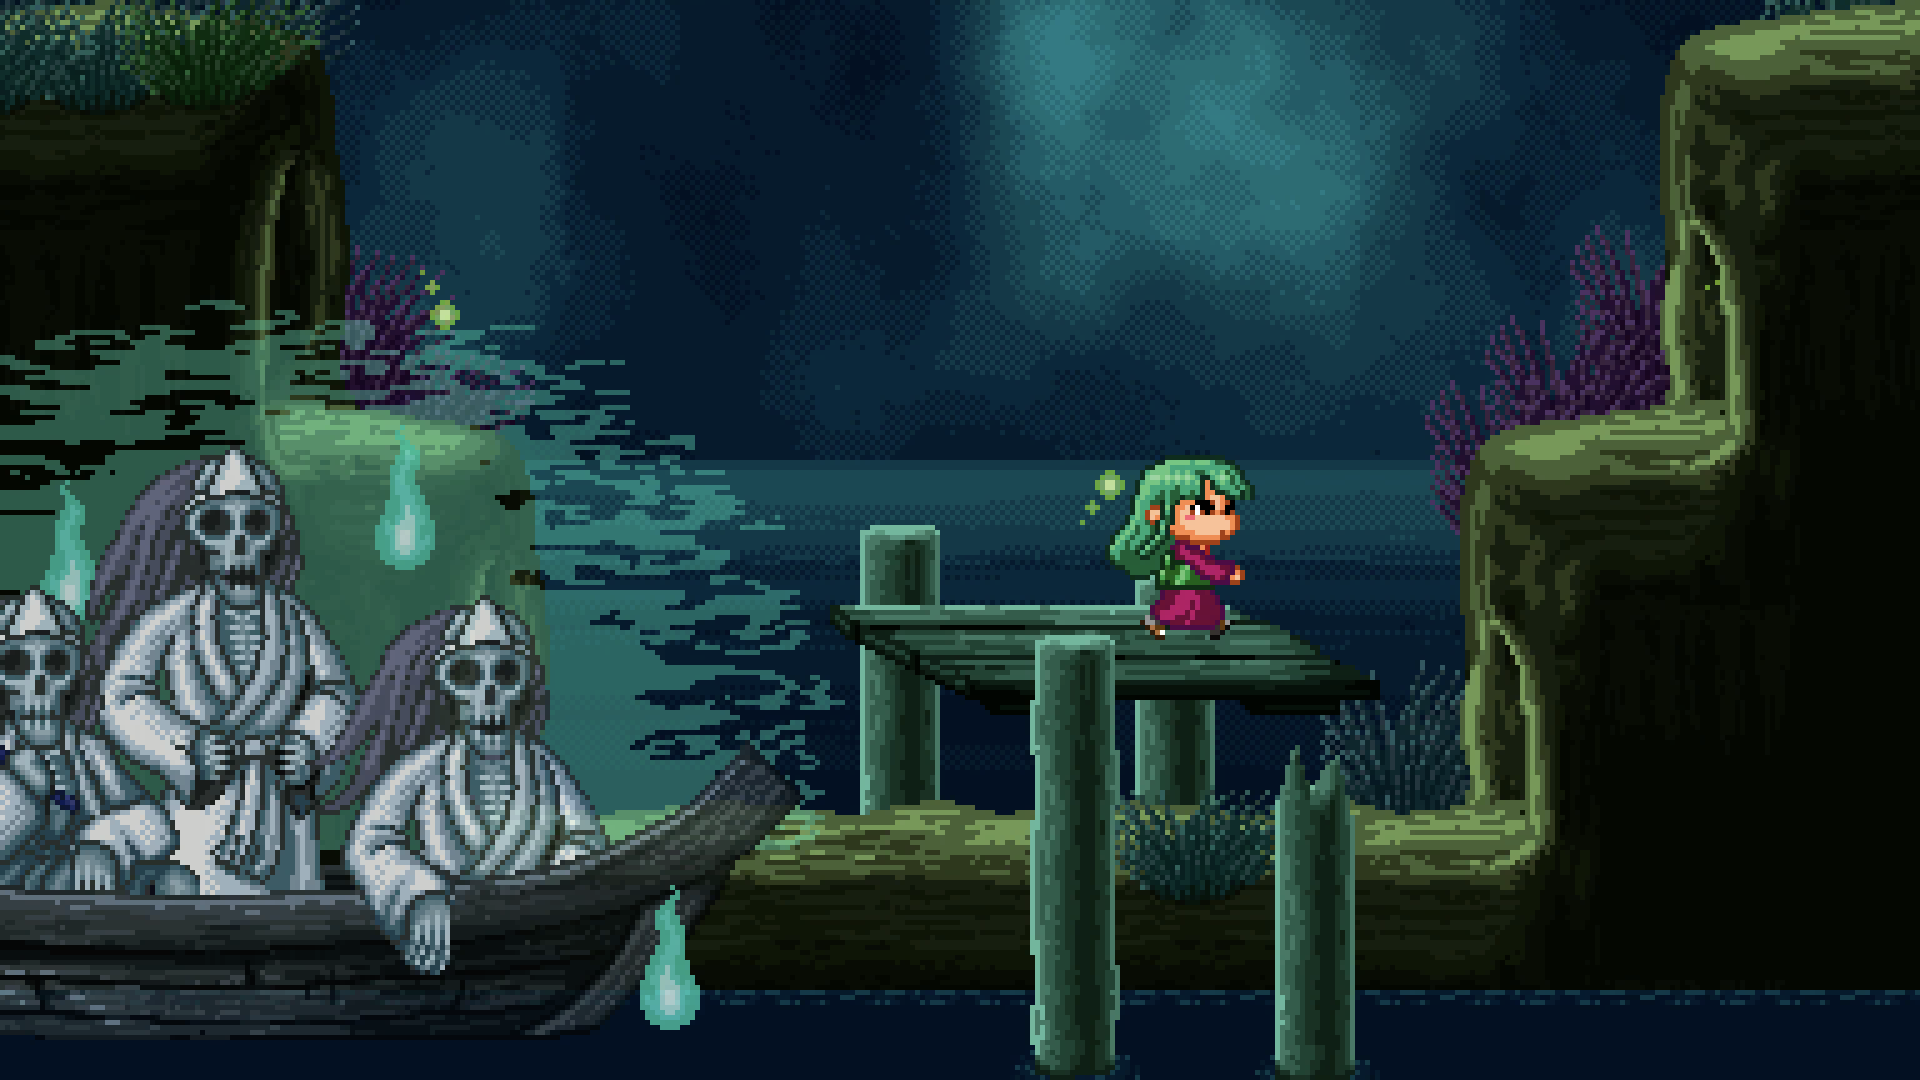 16-bit meets Studio Ghibli art style. Encounter all sorts of ghosts and demons drawn from Japanese mythology. -